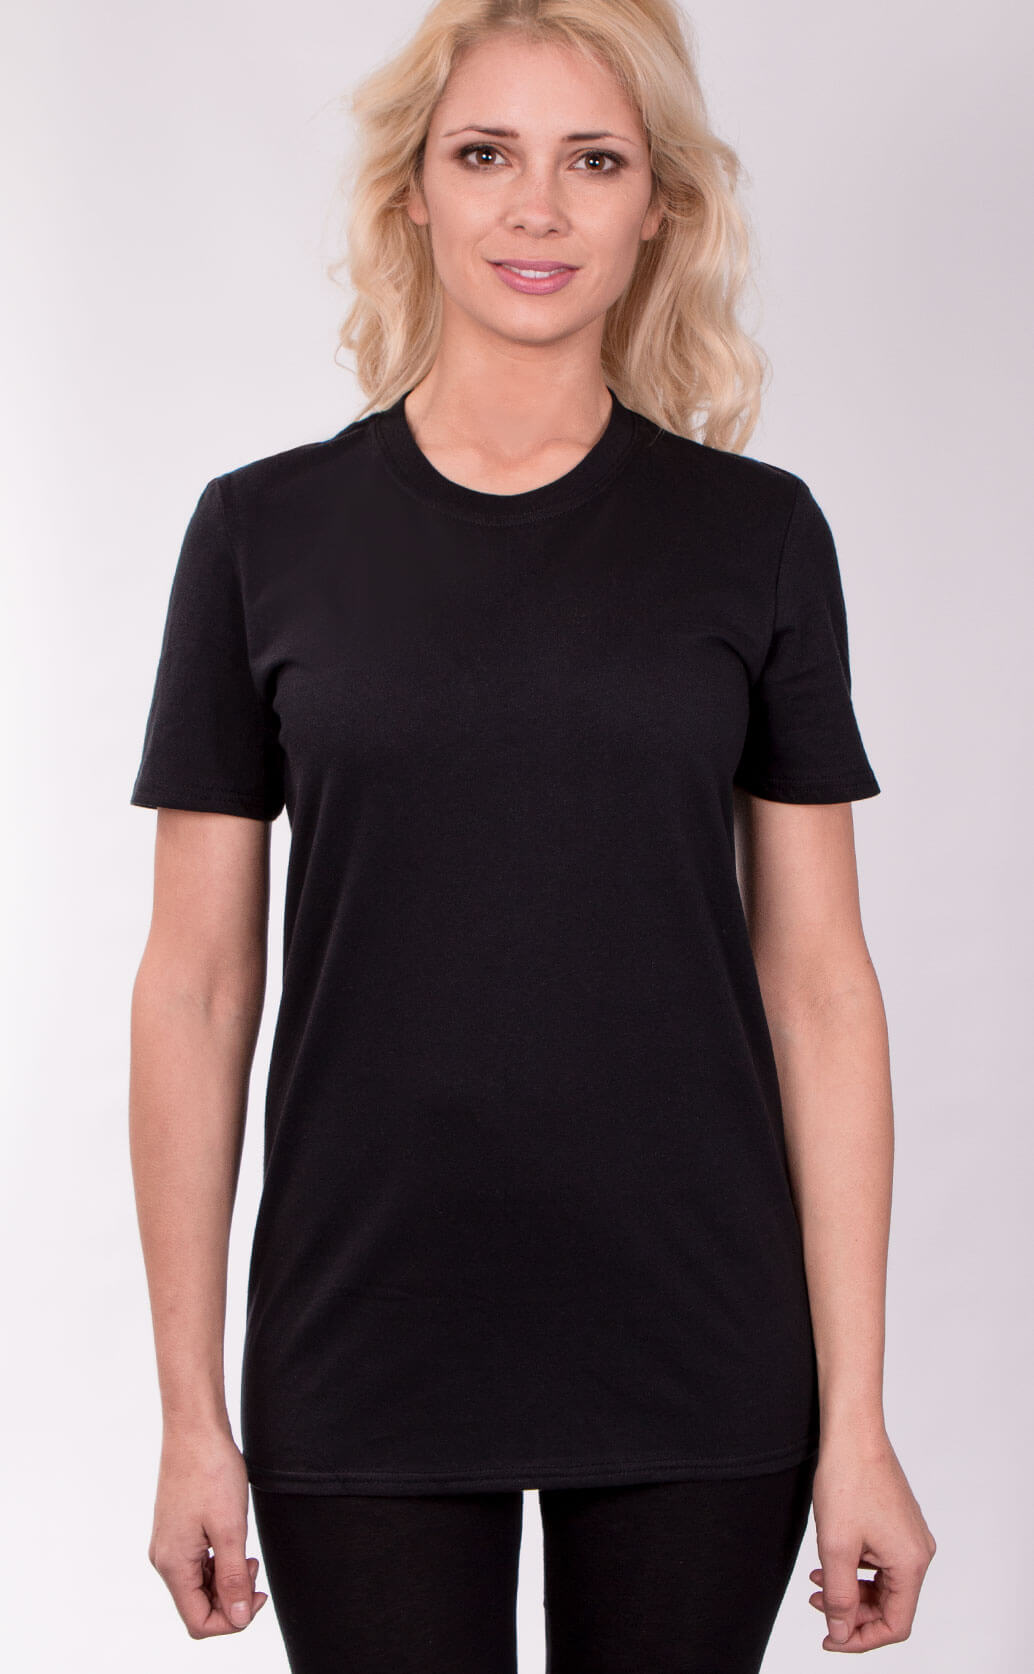 Size guide image for Unisex T Shirt shirt type. Shot from the front. Model is dressed in black